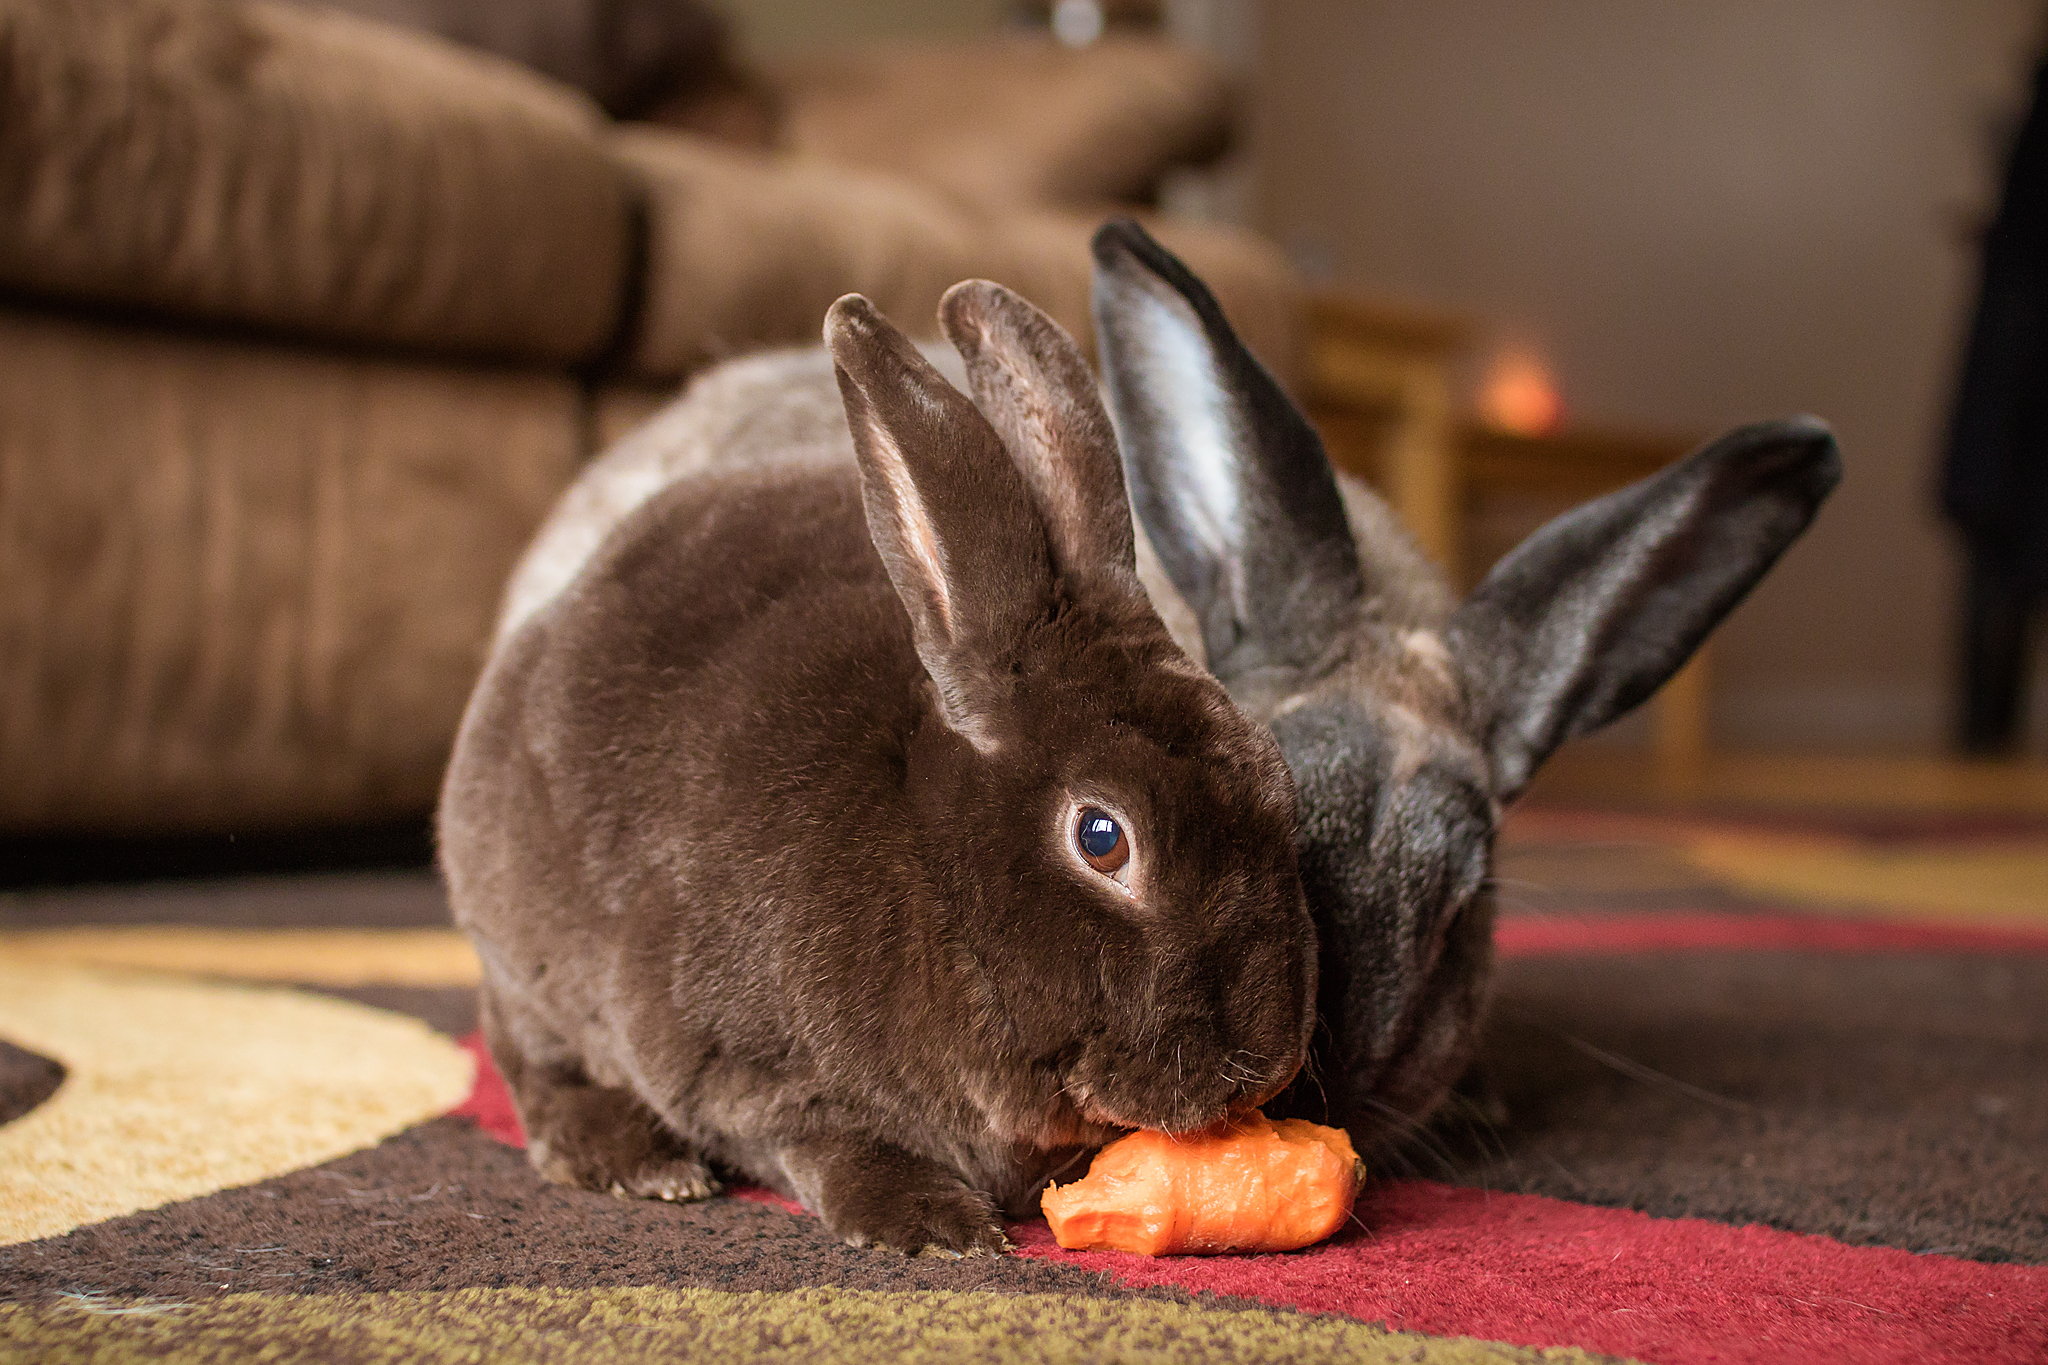 10000_carrots_rabbit_rescue.jpg